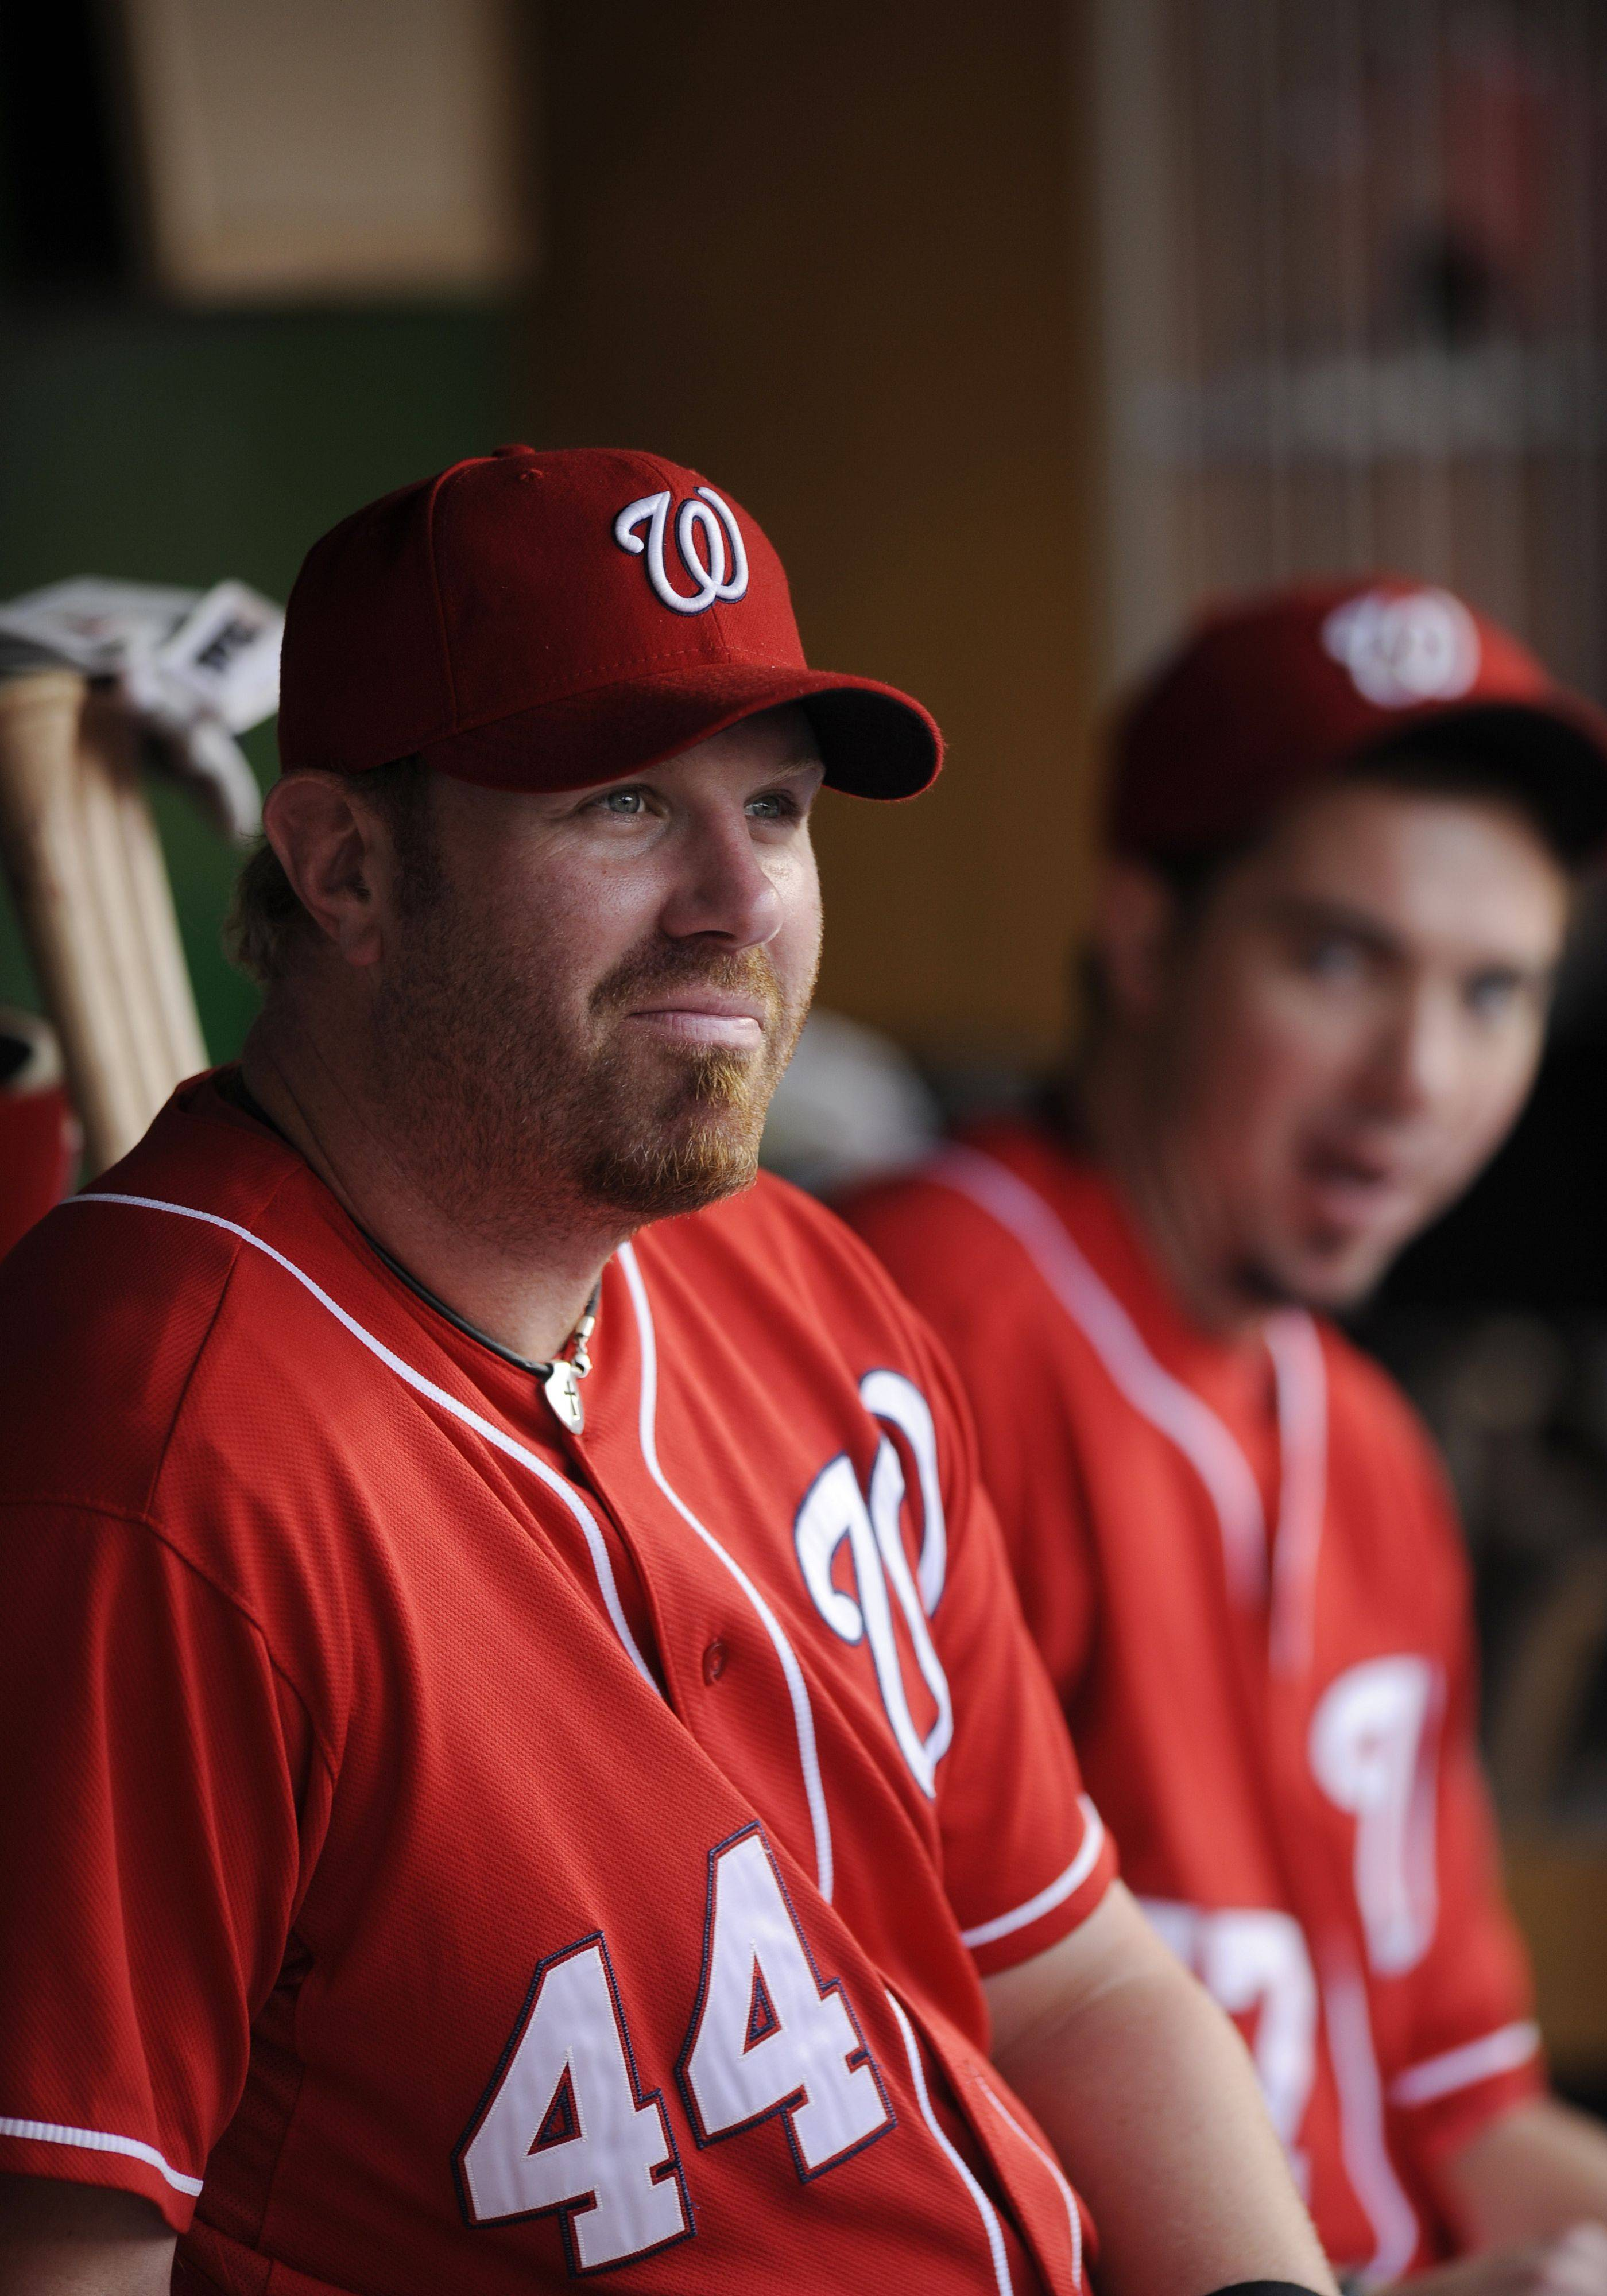 Washington Nationals first baseman Adam Dunn (44) looks out from the dugout before a baseball game against the Philadelphia Phillies.